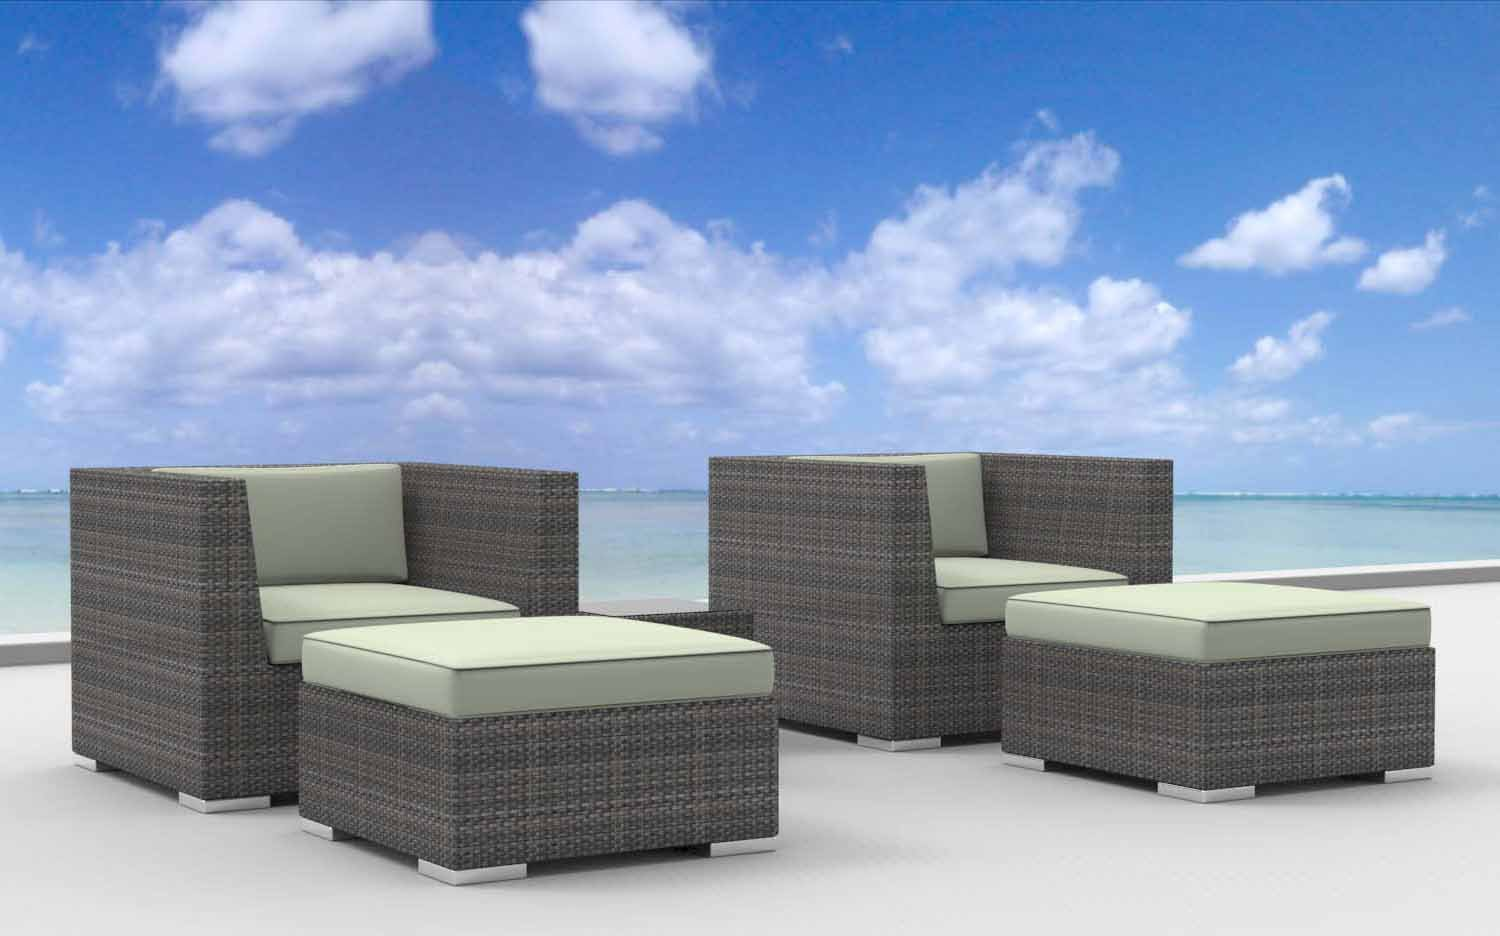 www.urbanfurnishing.net Urban Furnishing - Curacao 5pc Modern Outdoor Backyard Wicker Rattan Patio Furniture Sofa Chair Couch Set - Beige at Sears.com